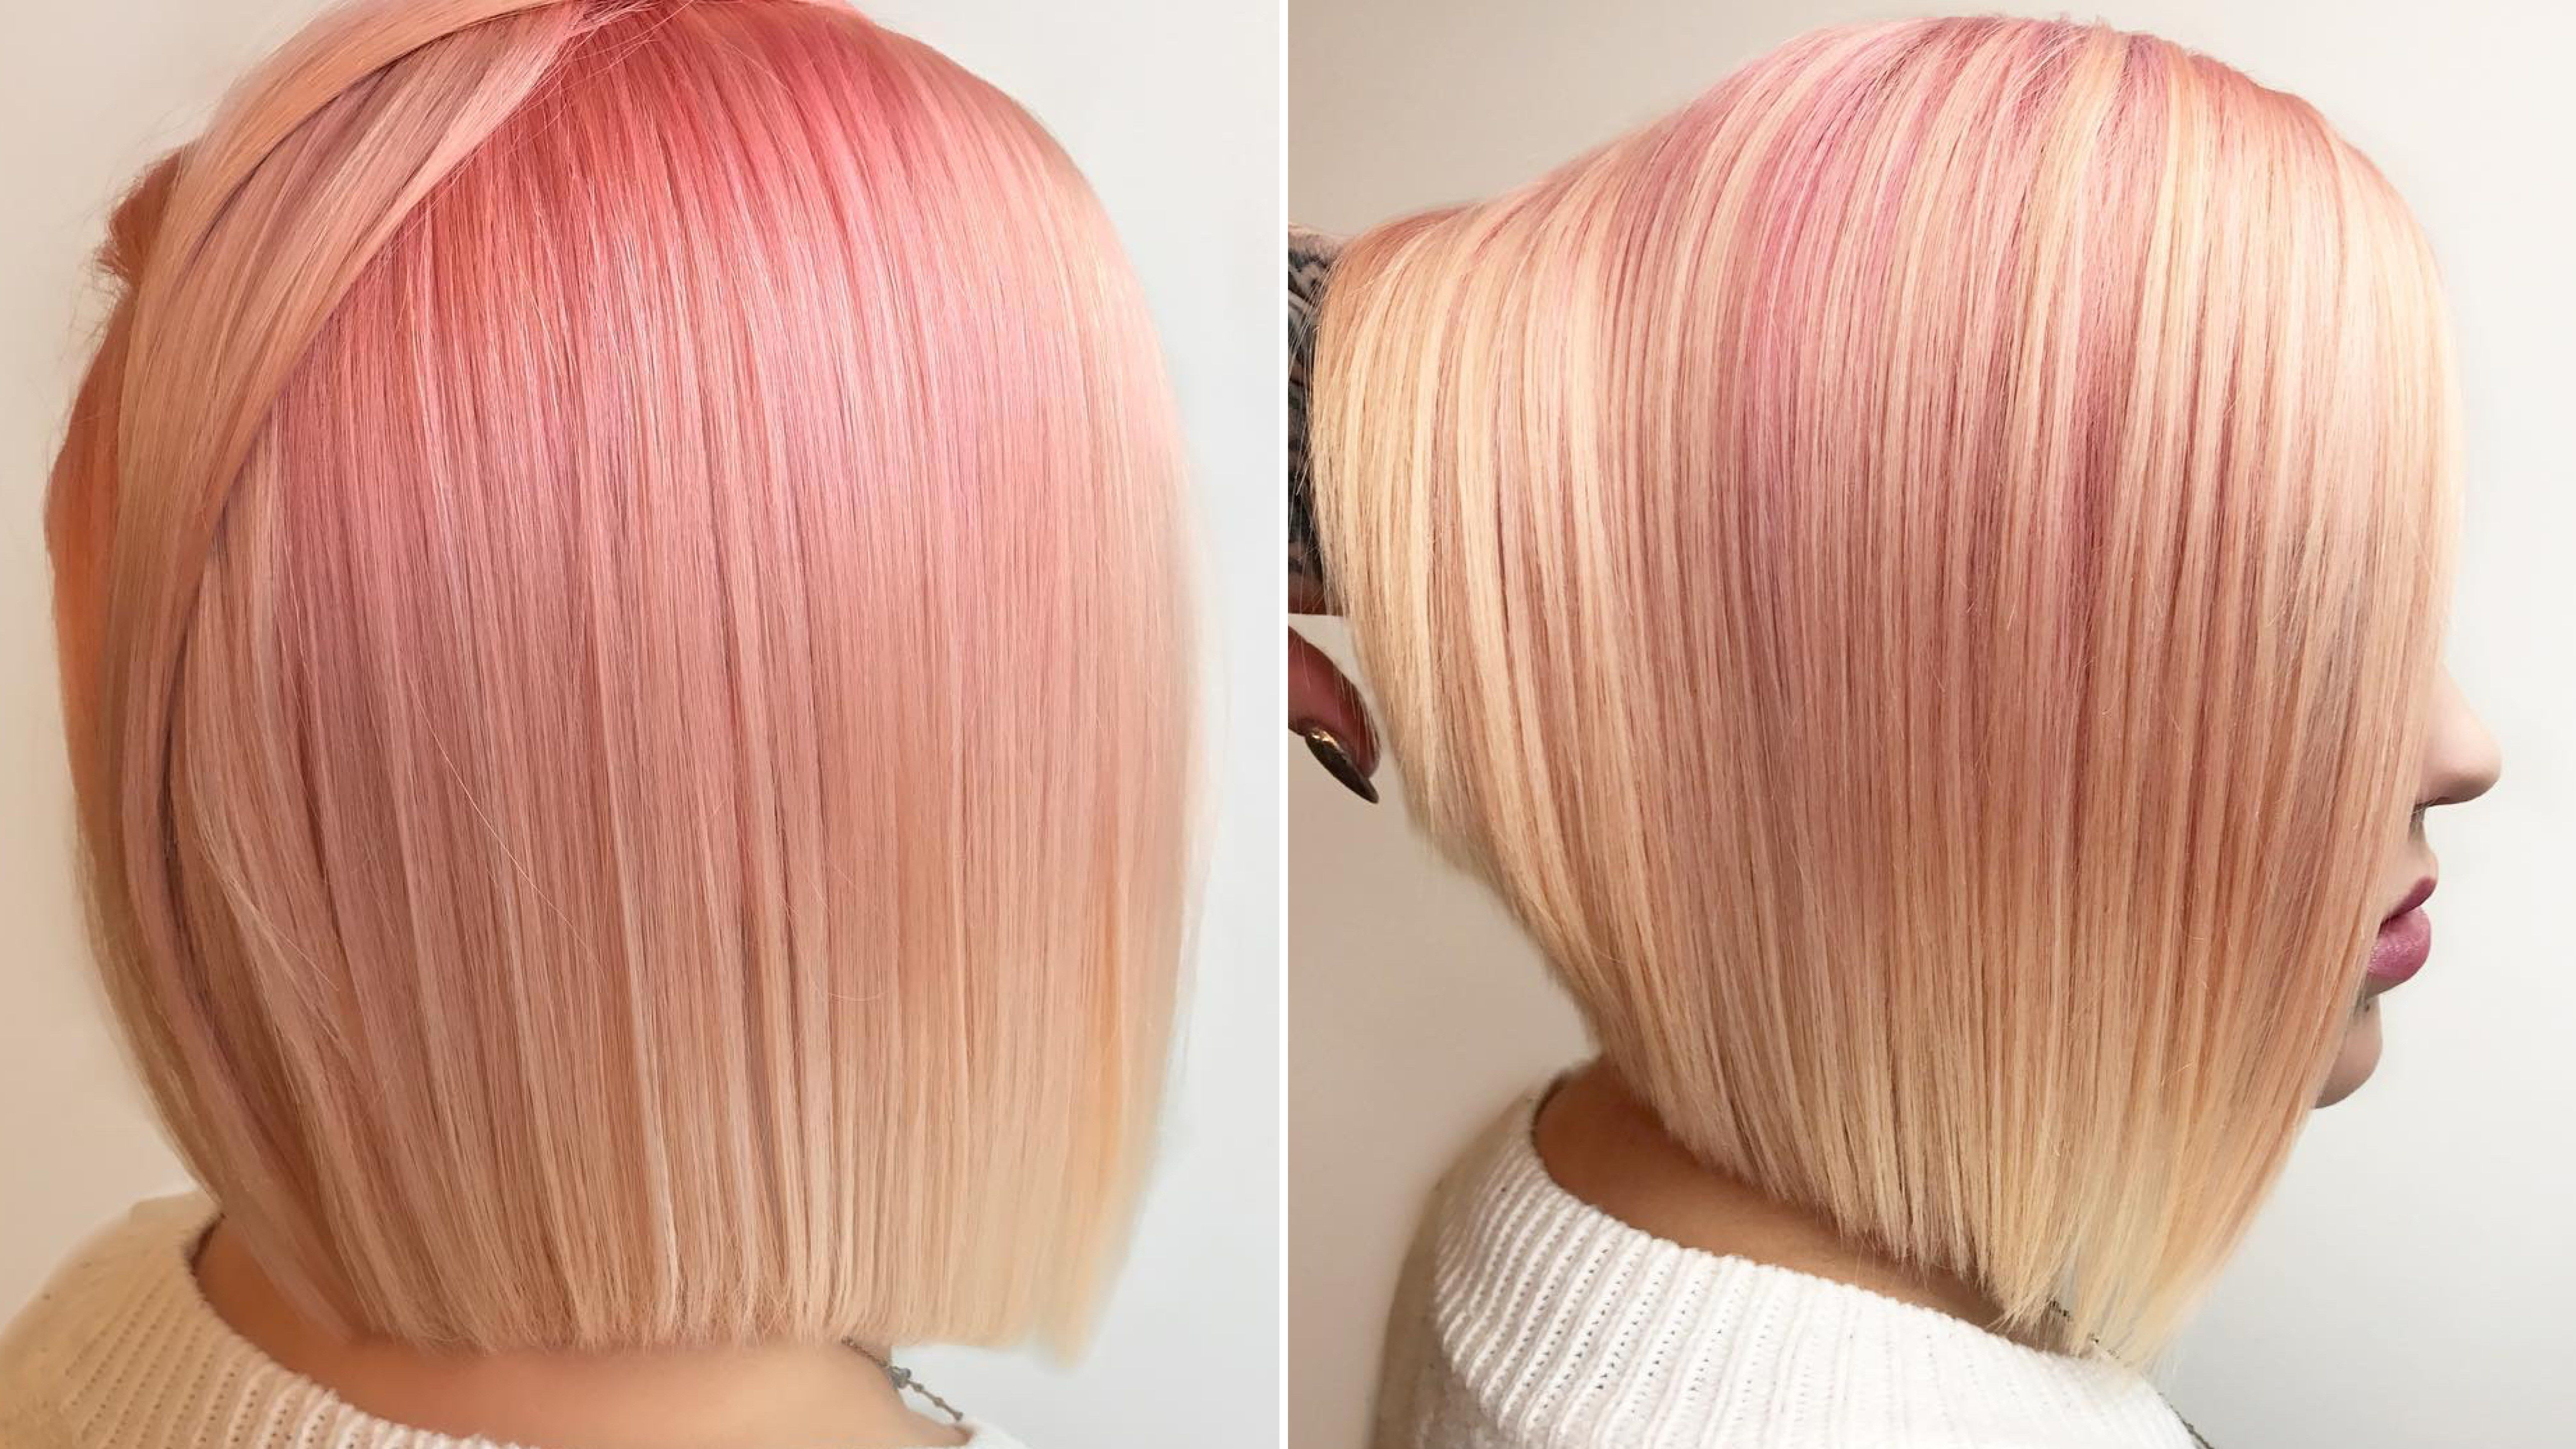 Buttered rose gold is the fresh new haircolor trend on instagram